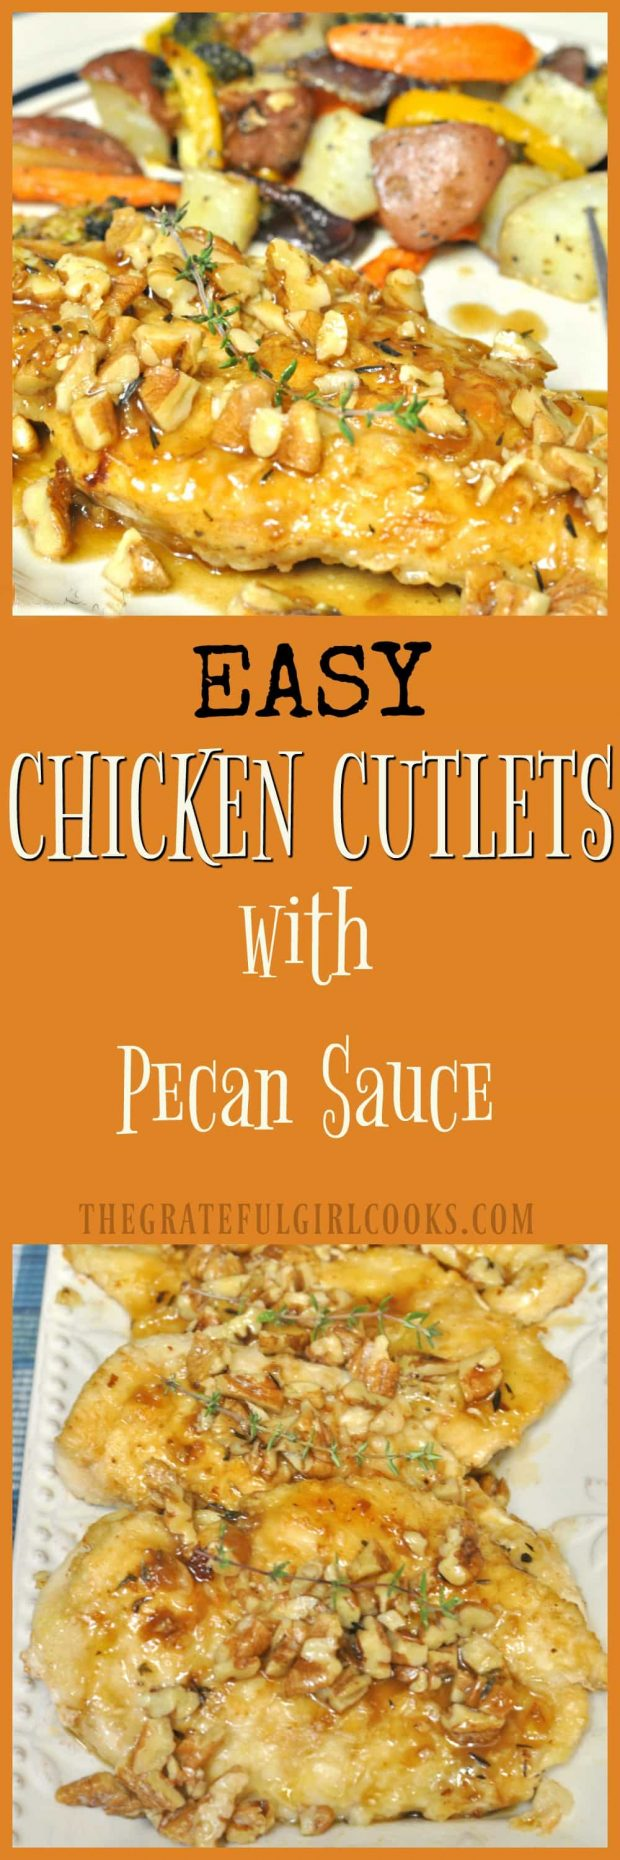 Chicken Cutlets With Pecan Sauce / The Grateful Girl Cooks! This EASY week-night dinner of pan-seared chicken breast cutlets, topped with a delicious butter pecan sauce, can be prepared and on the table in 20 minutes!